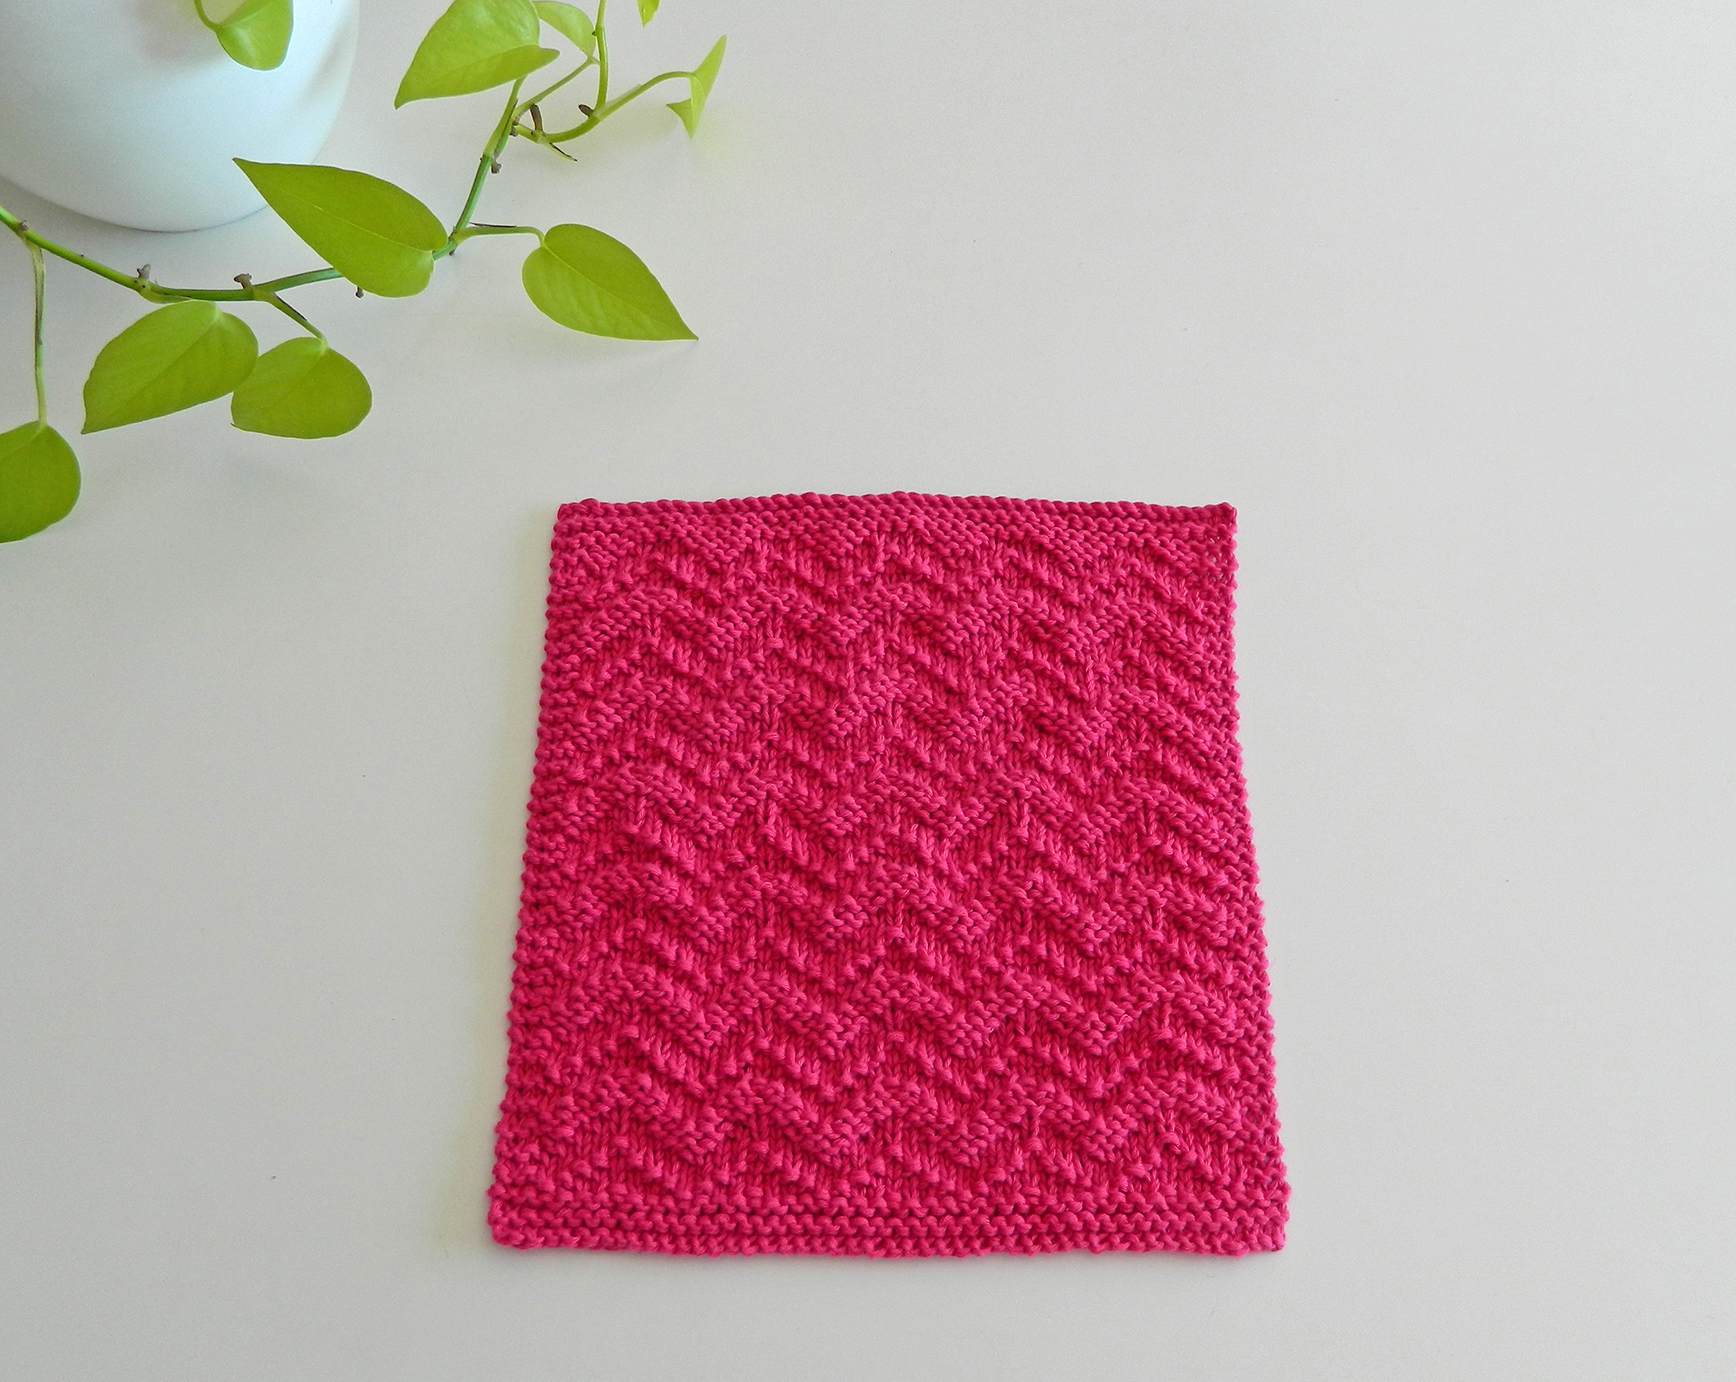 Chevron knitting pattern chevron afghan square OhLaLana dishcloth free pattern